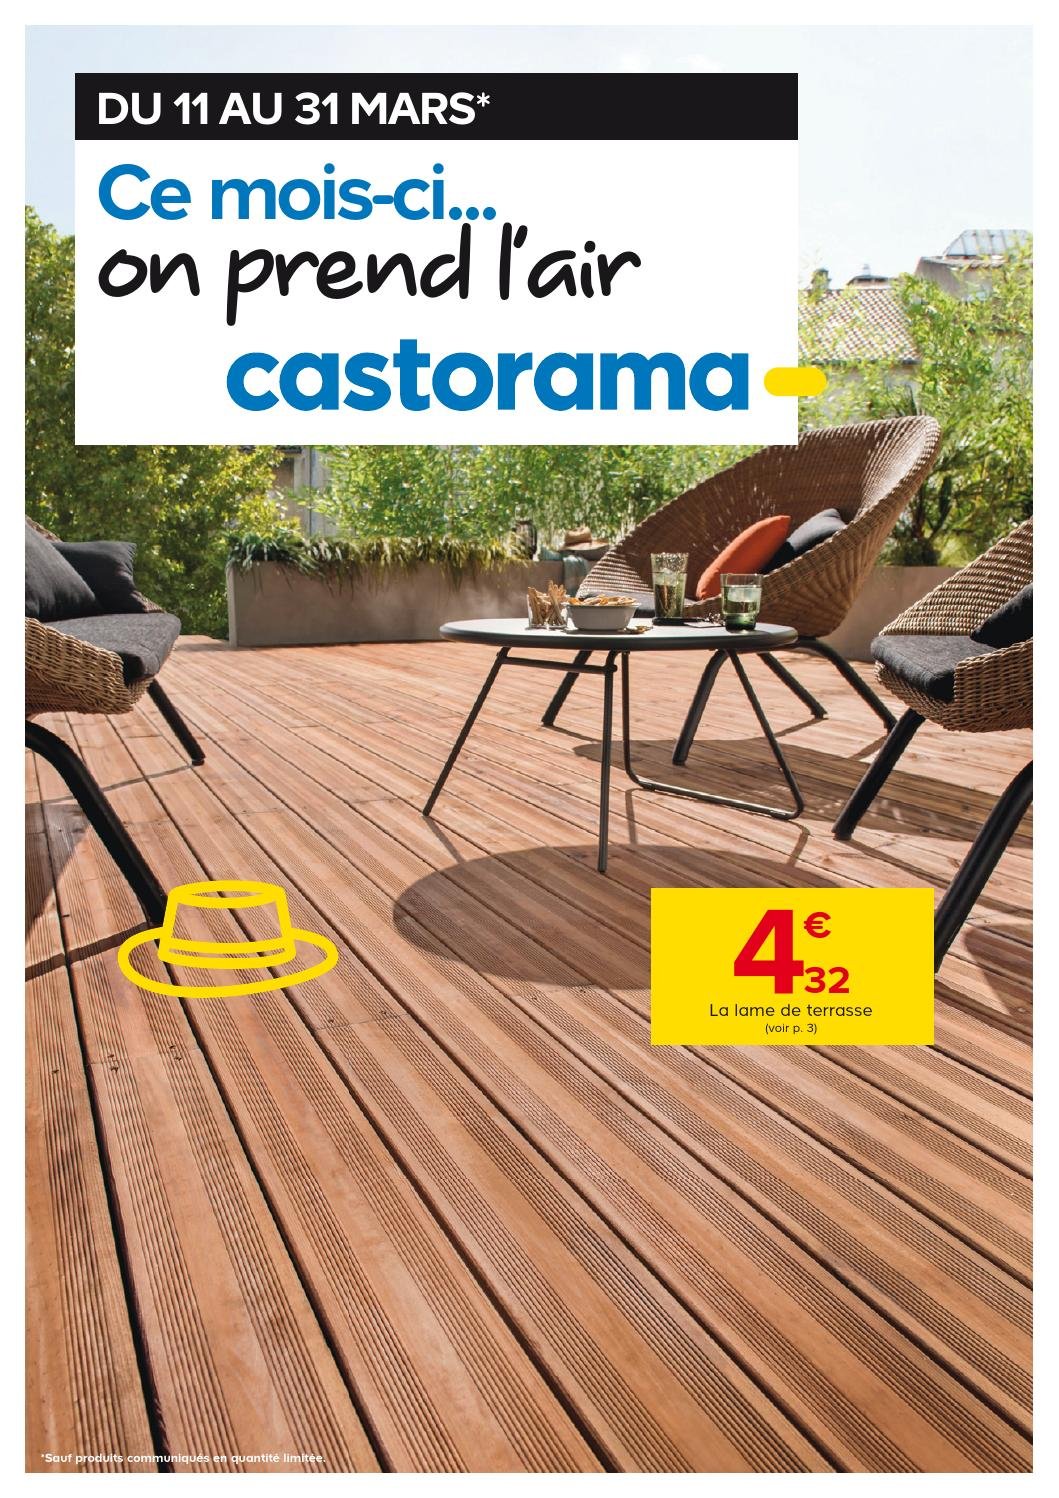 Castorama catalogue 11 31mars2015 by for Castorama lame de terrasse